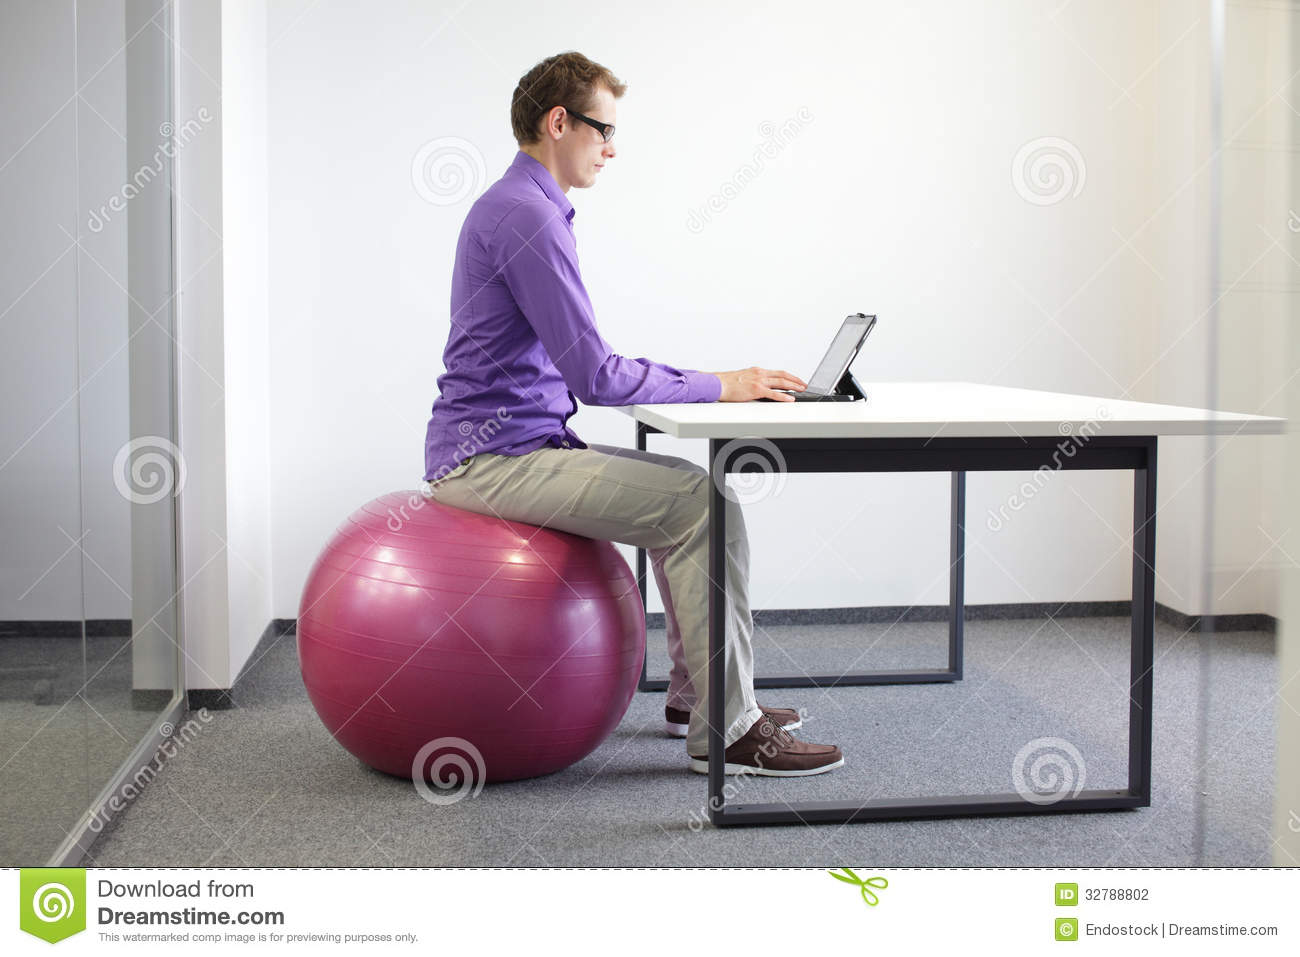 Man On Stability Ball Working With Tablet Stock Photo